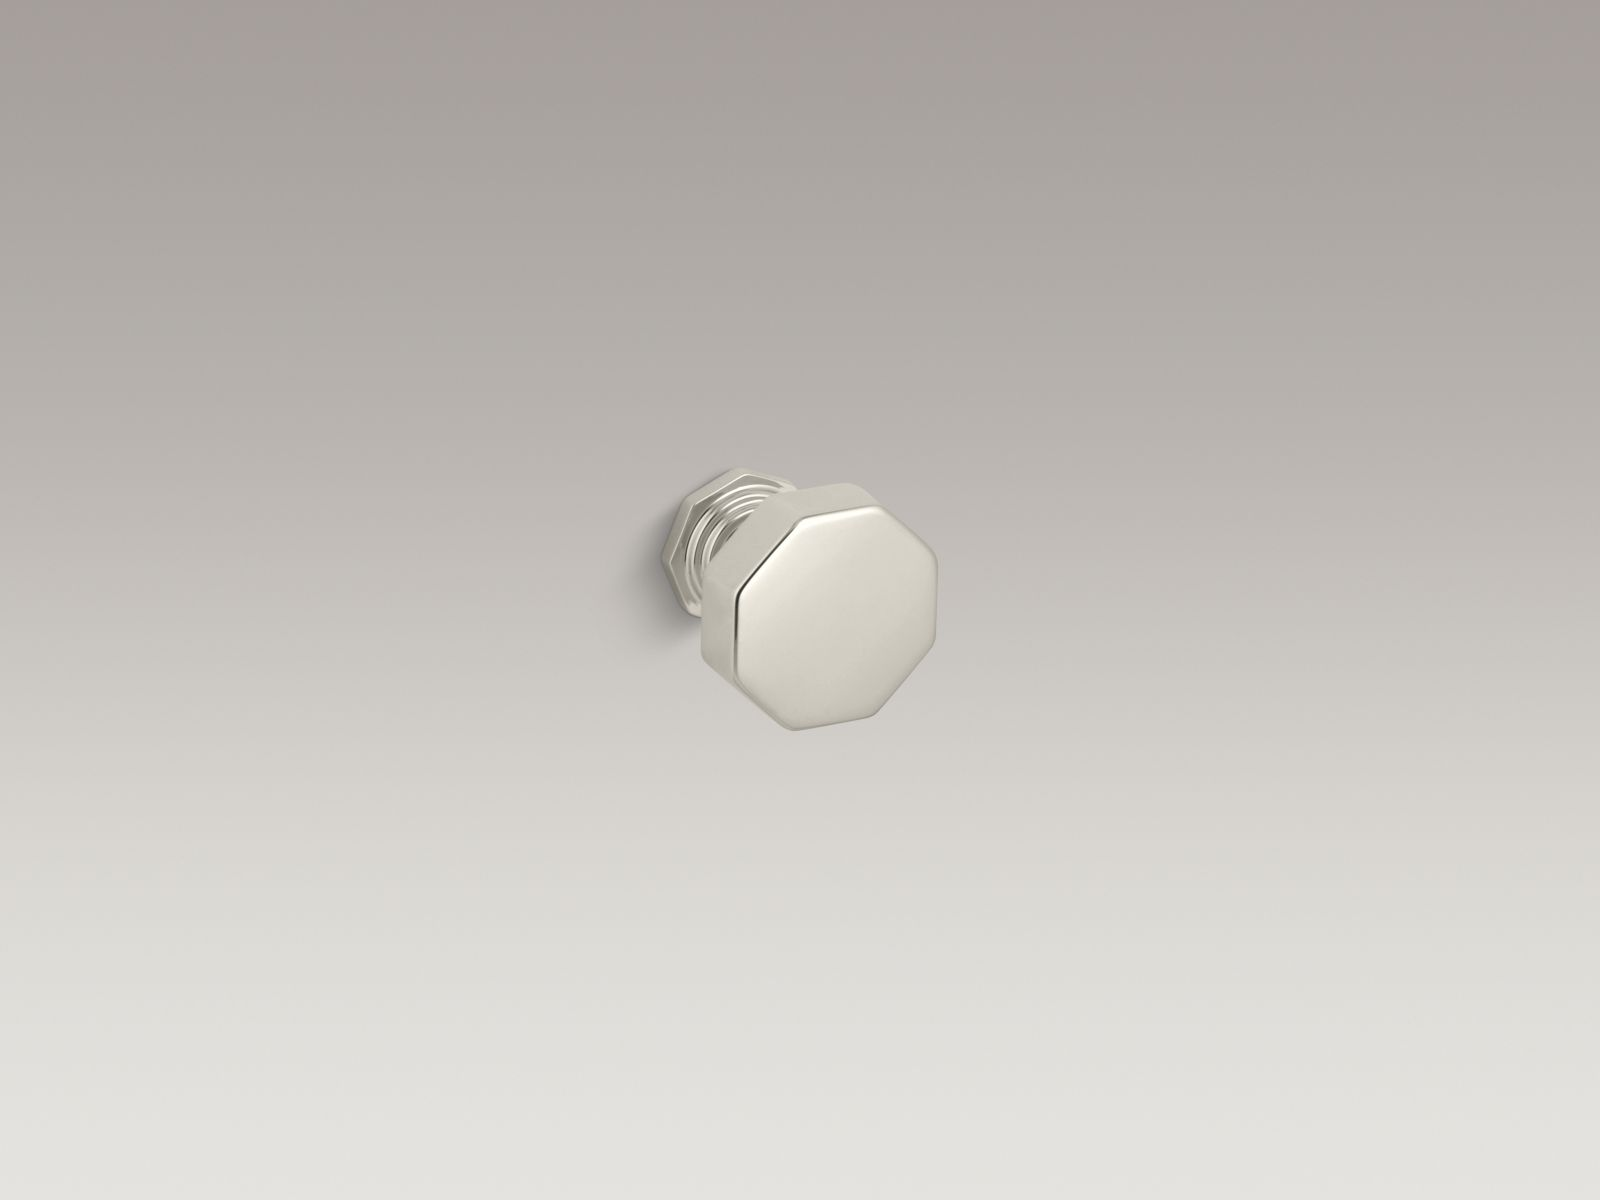 Kohler K-13126-SN Pinstripe Cabinet and Drawer Knob Vibrant Polished Nickel